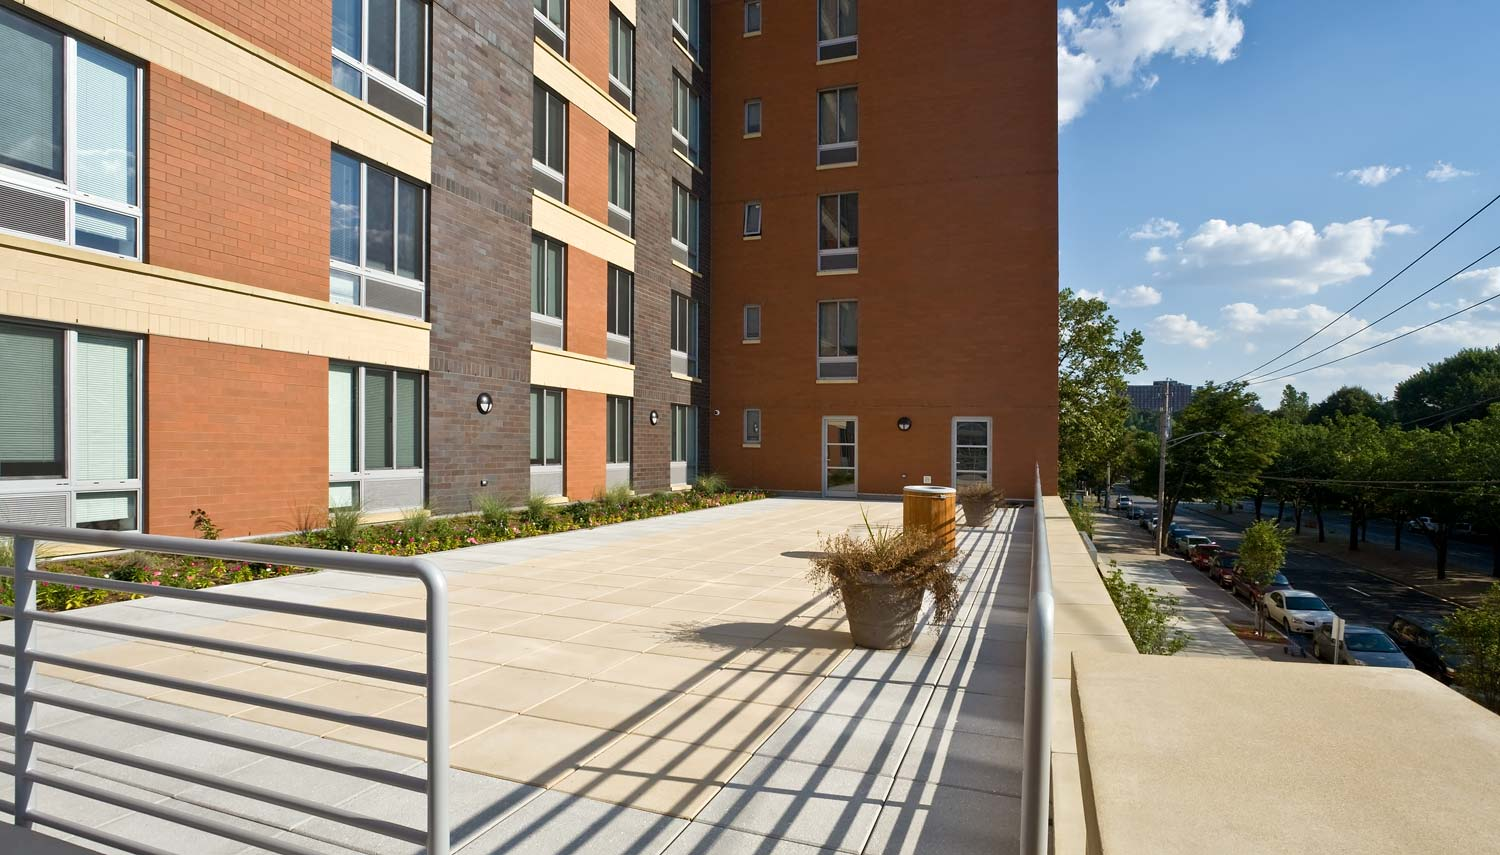 The second floor terrace is one of several rooftop terraces accessible for residents' use.